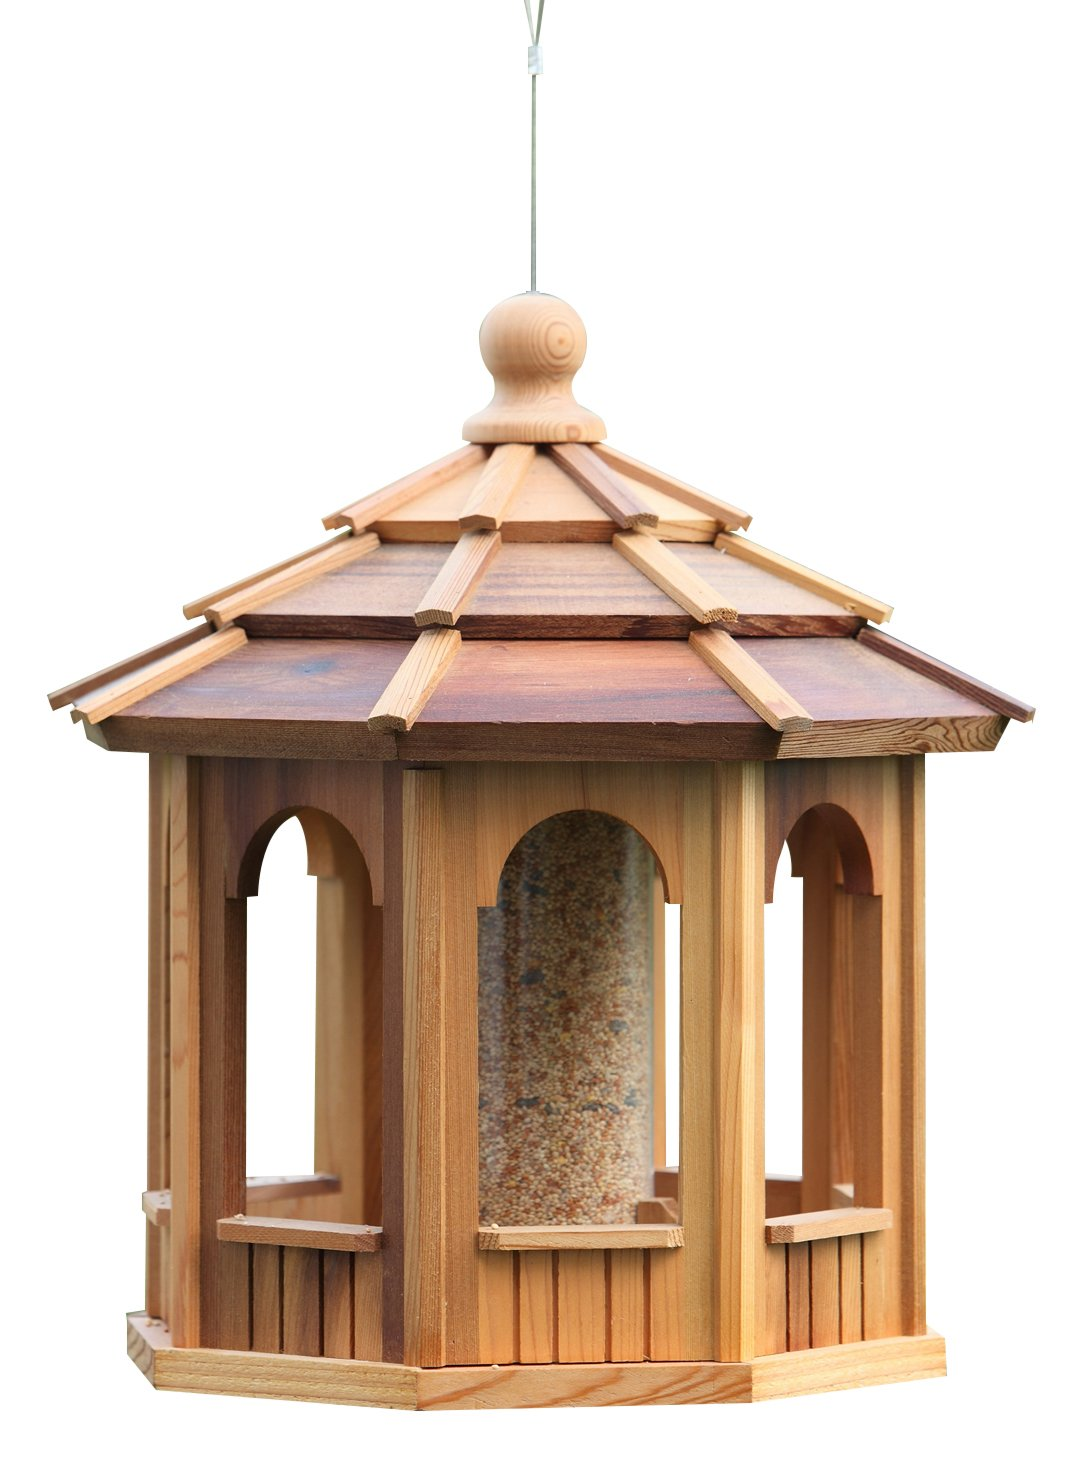 products zoom bird lumber company feeders valley krempp feeder gazebo super cherry